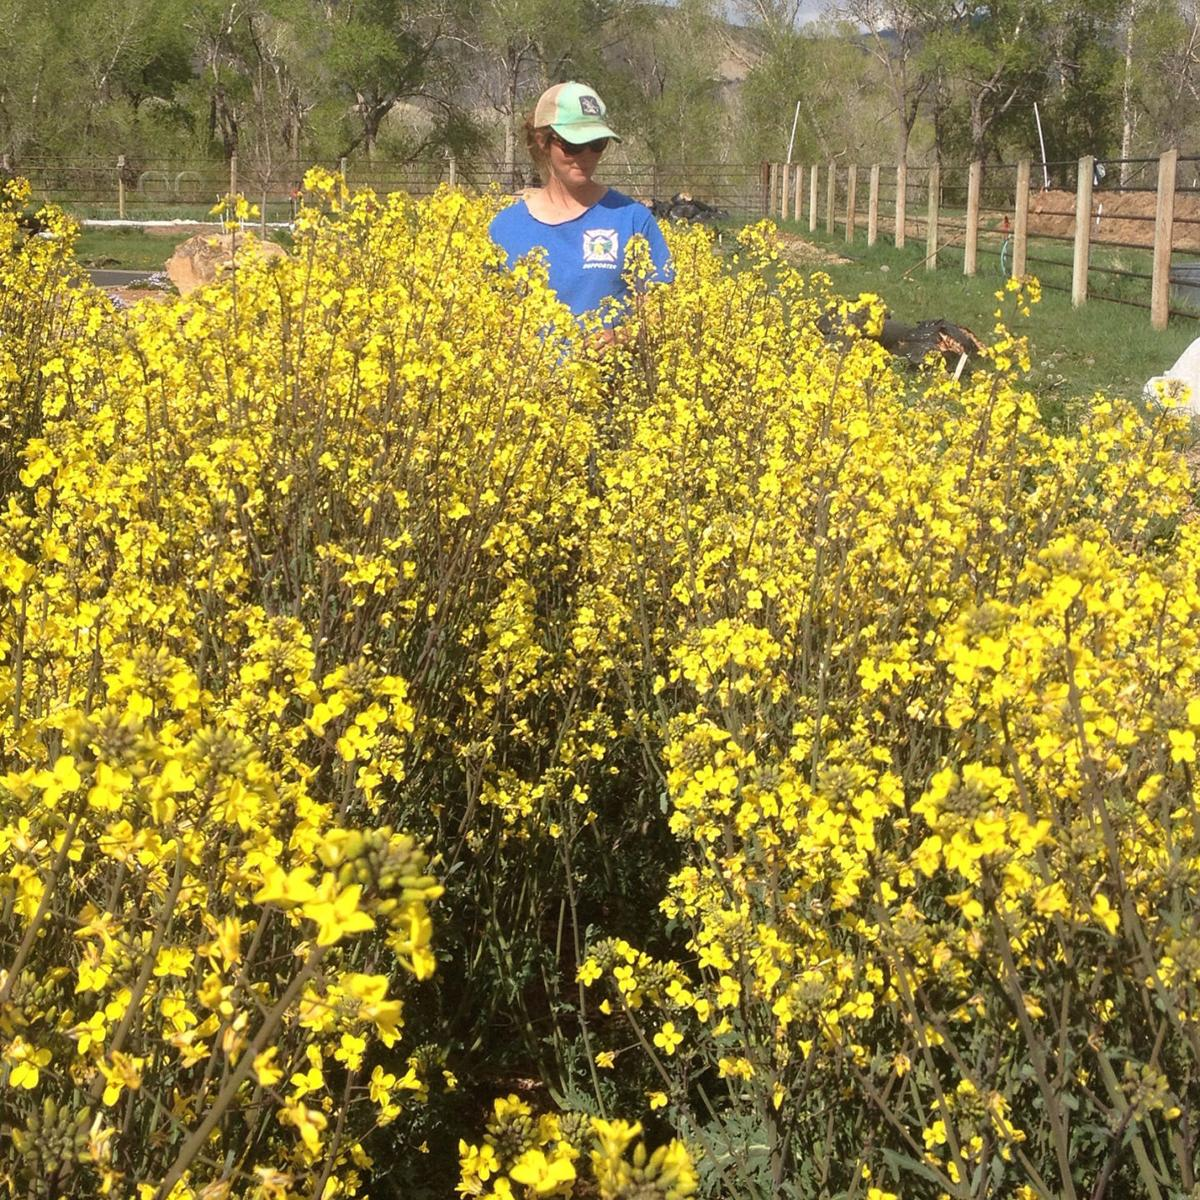 If You Have The Need For Seed Go To High Desert Home And Garden